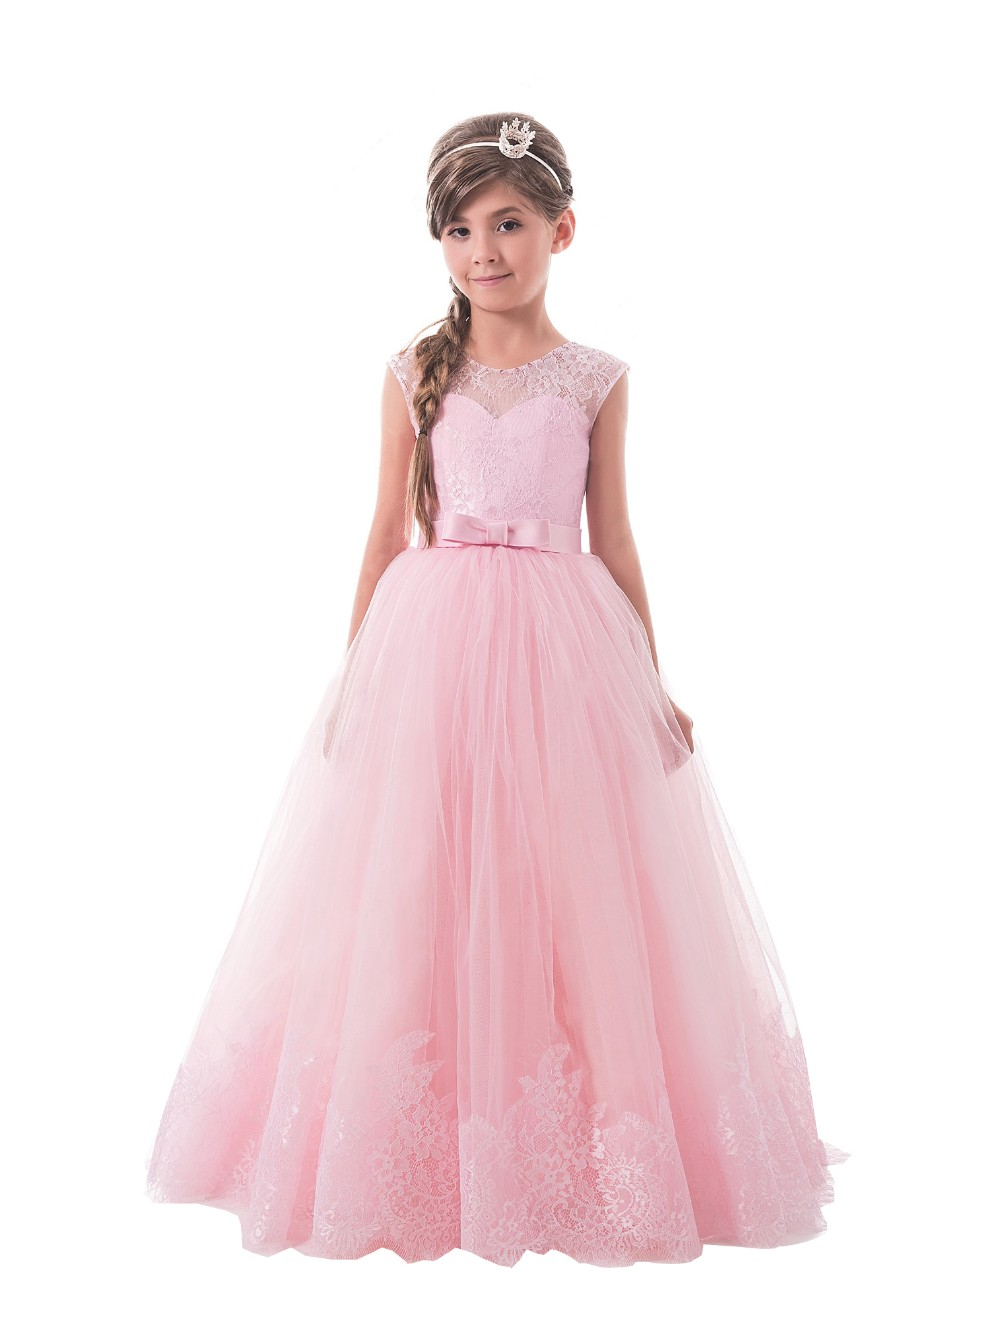 New Pink Lace Flower Girl Dress For Wedding O-neck Little Girl Pageant Dresses Kids Wedding Party Dress vestido para свадебное платье wedding dress v vestido noiva w1201